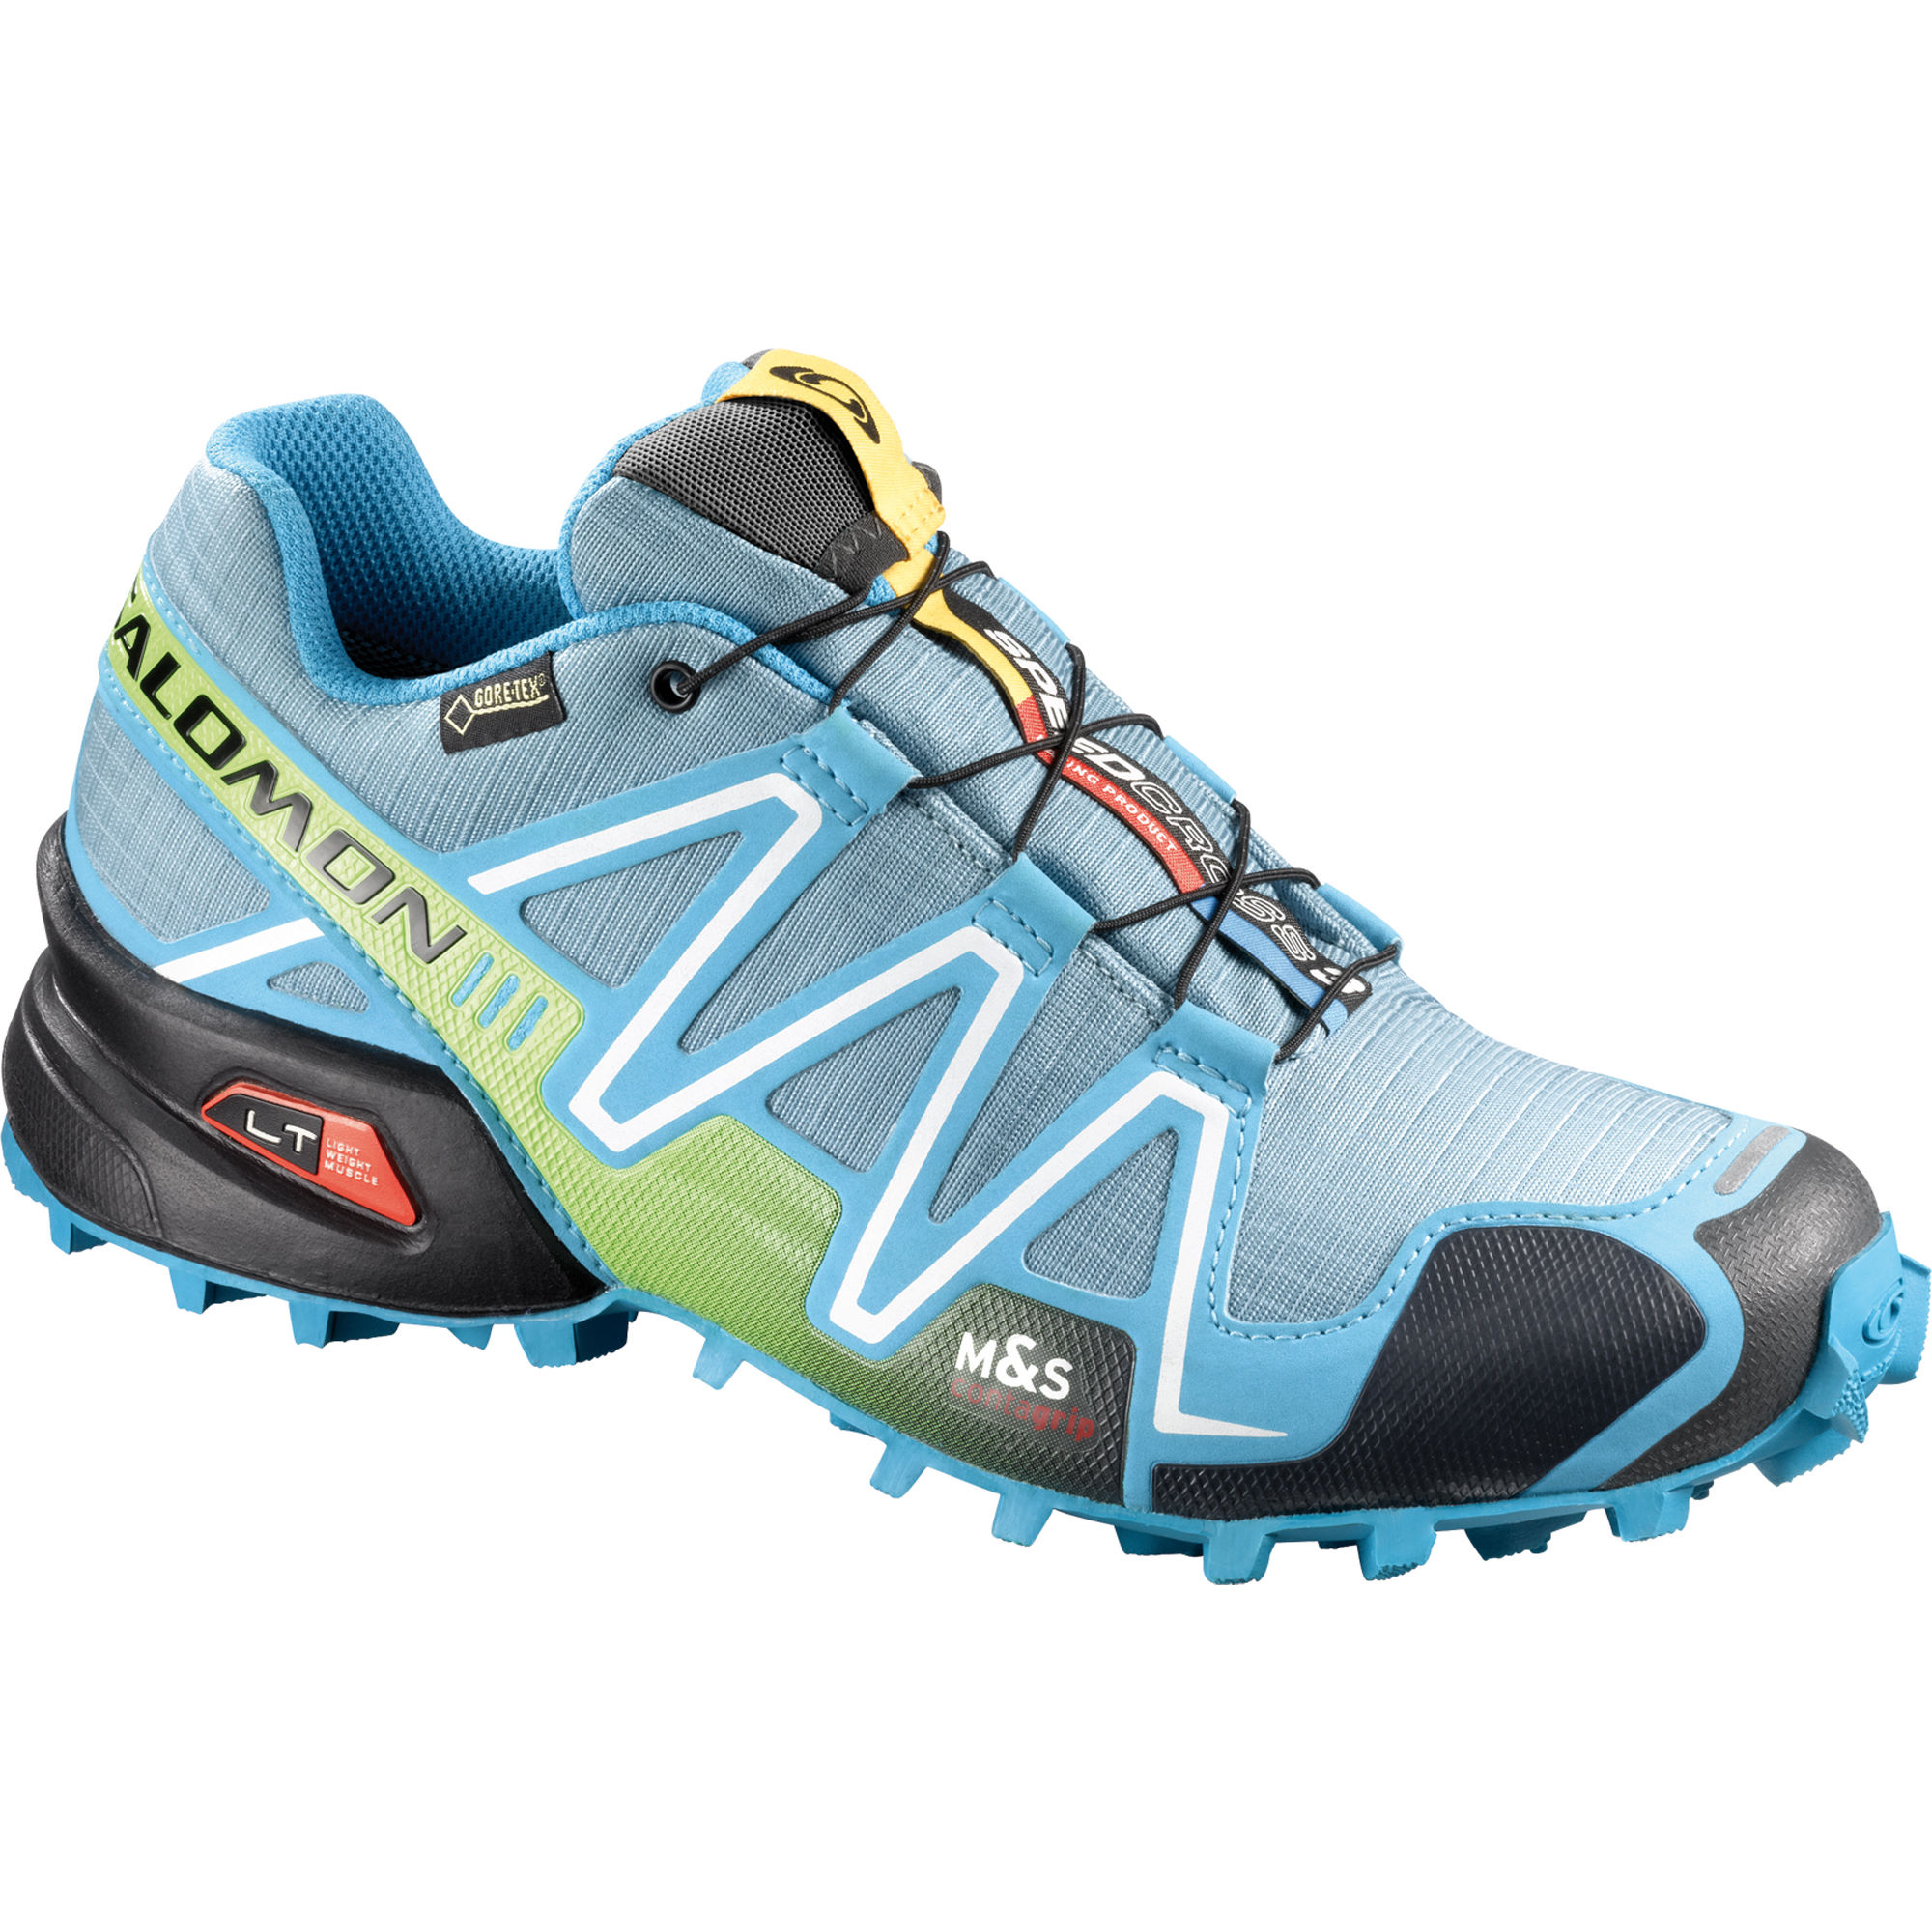 salomon vs salomon Salomon sth2 wtr 16 or salomon warden 11 - comparing ⭐ reviews & differences | compare real customer reviews, prices, images, specifications and more.